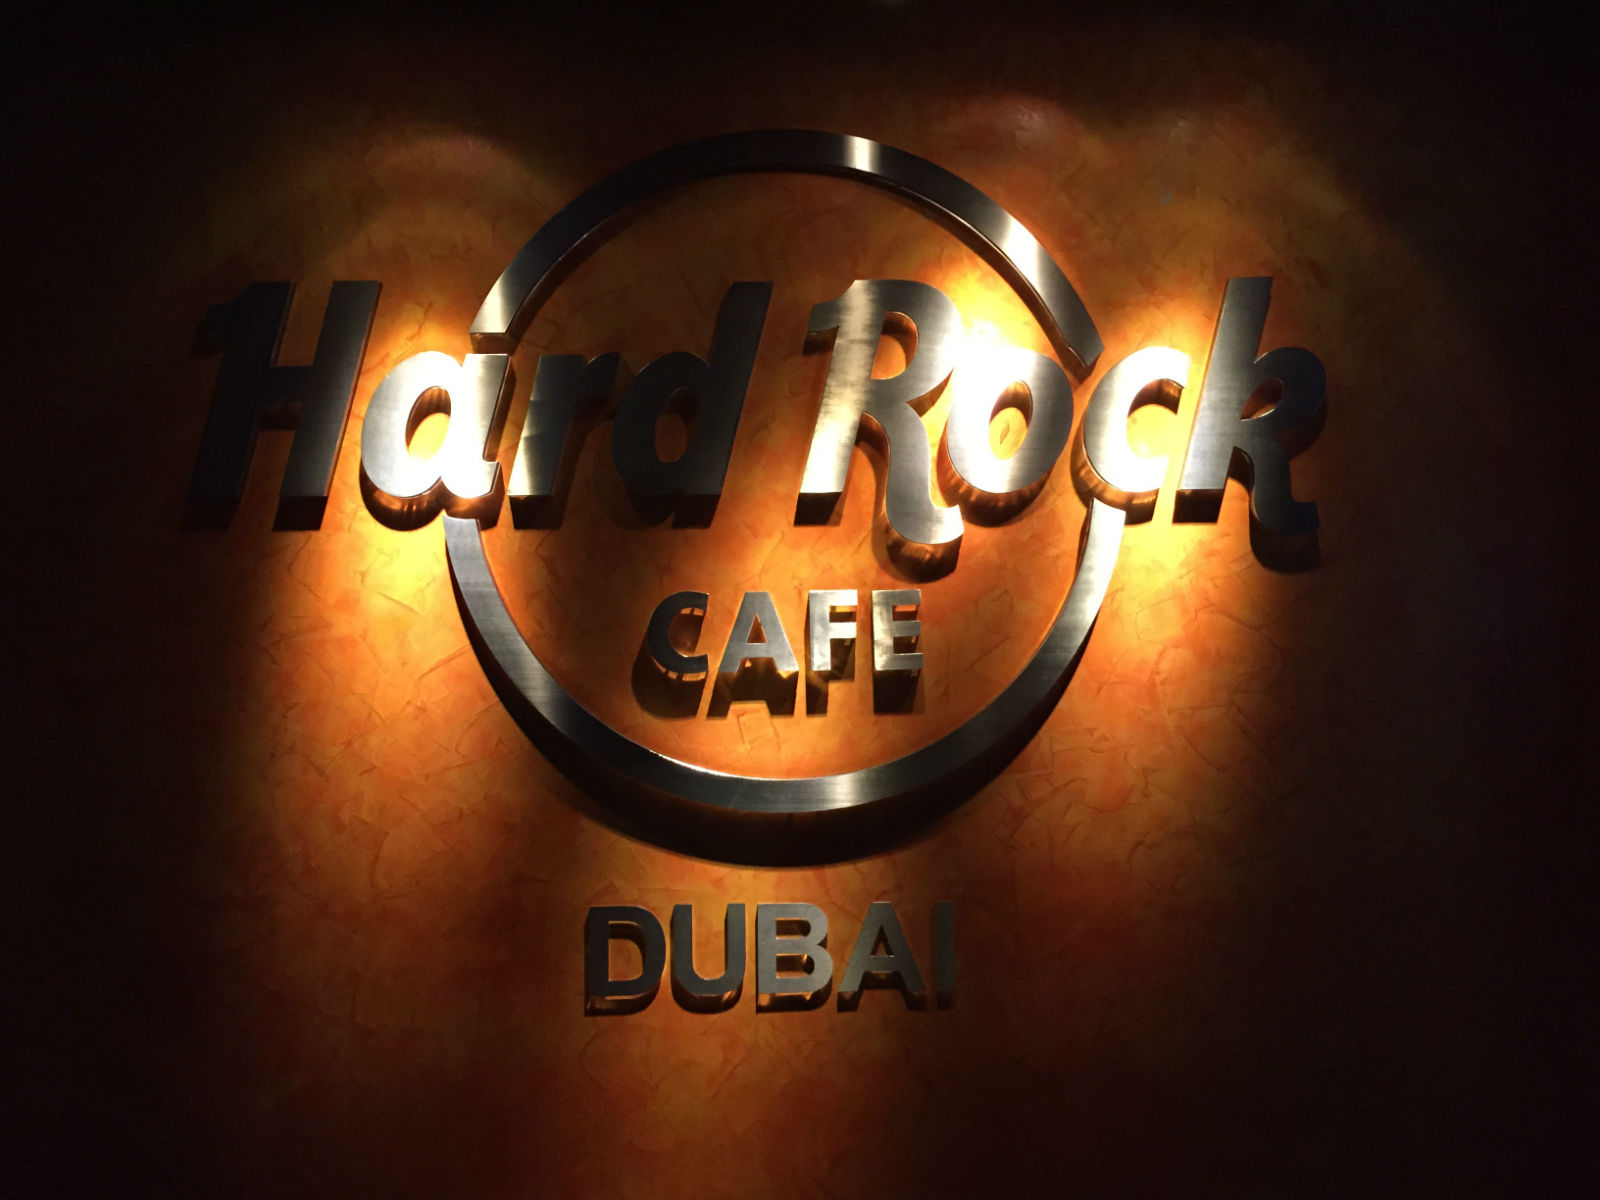 Hard Rock Café Dubai